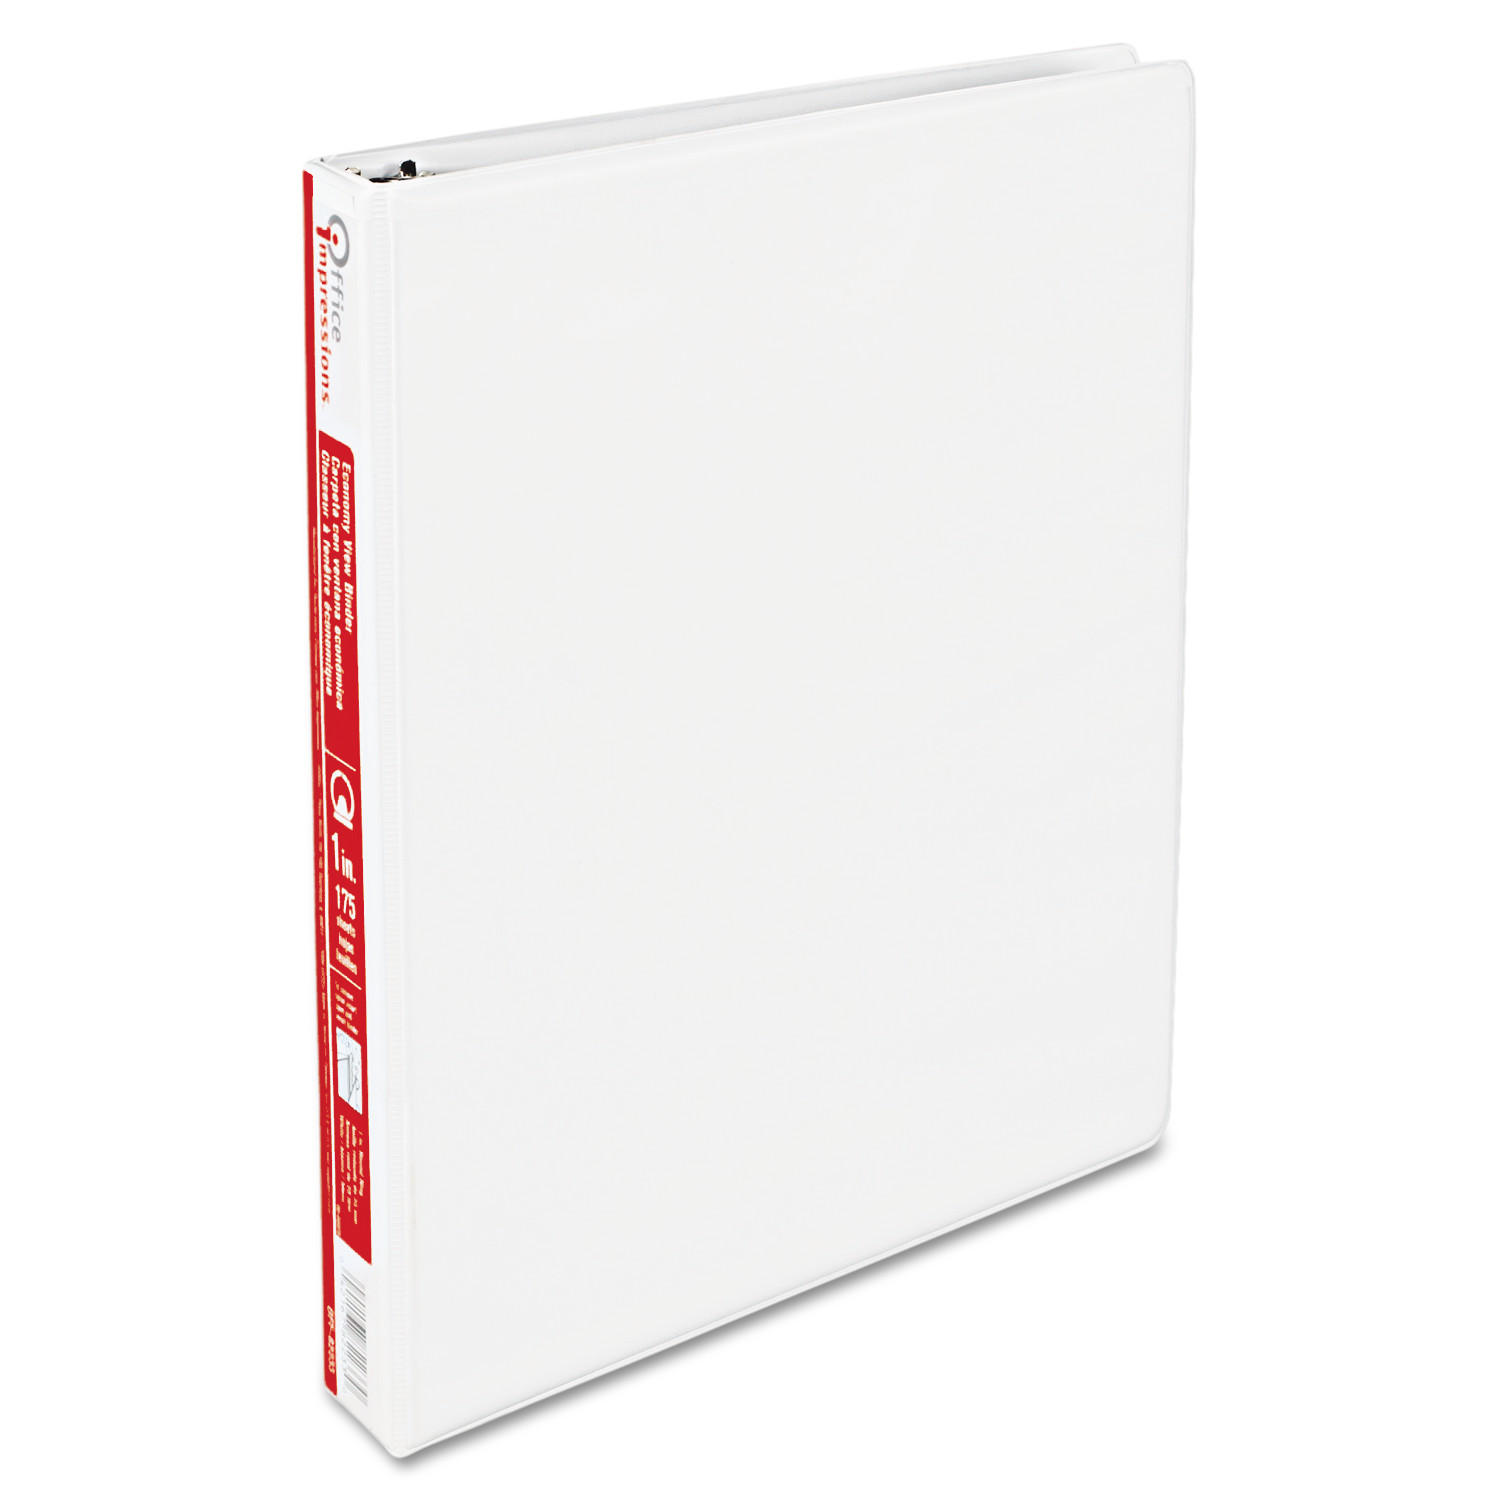 "Office Impressions Economy Round Ring View Binder, 1"" Capacity, White"